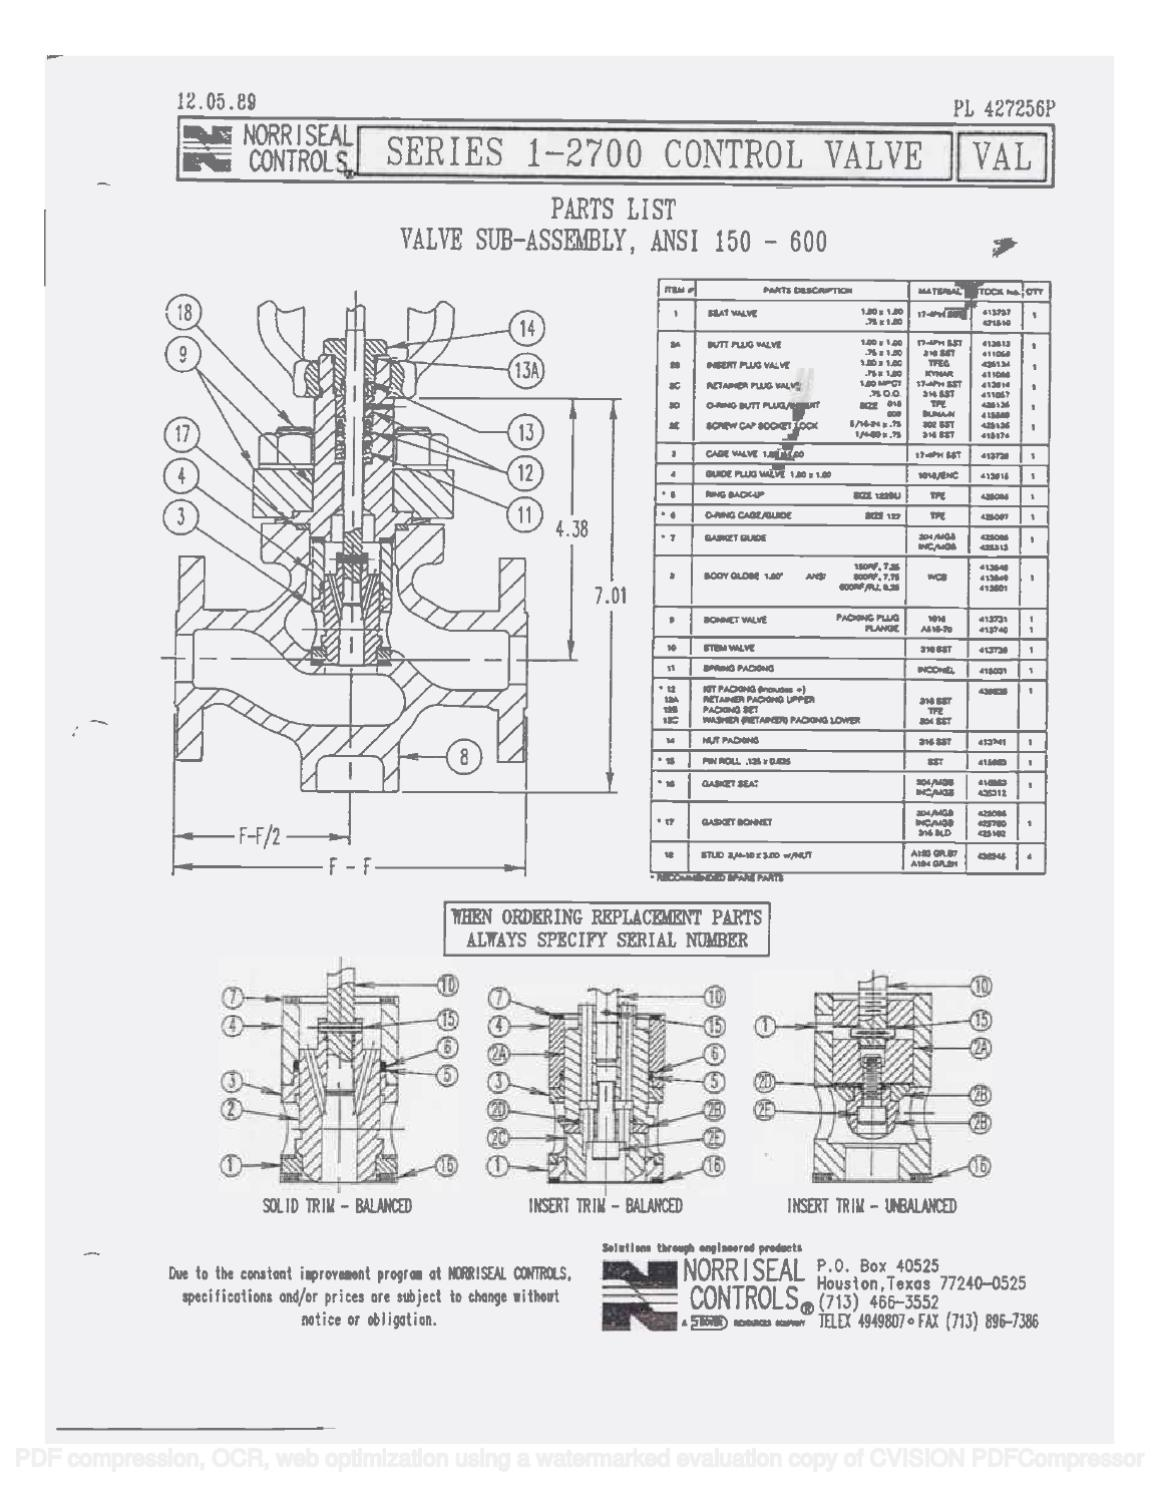 2700 Parts list & Schematic by RMC Process Controls